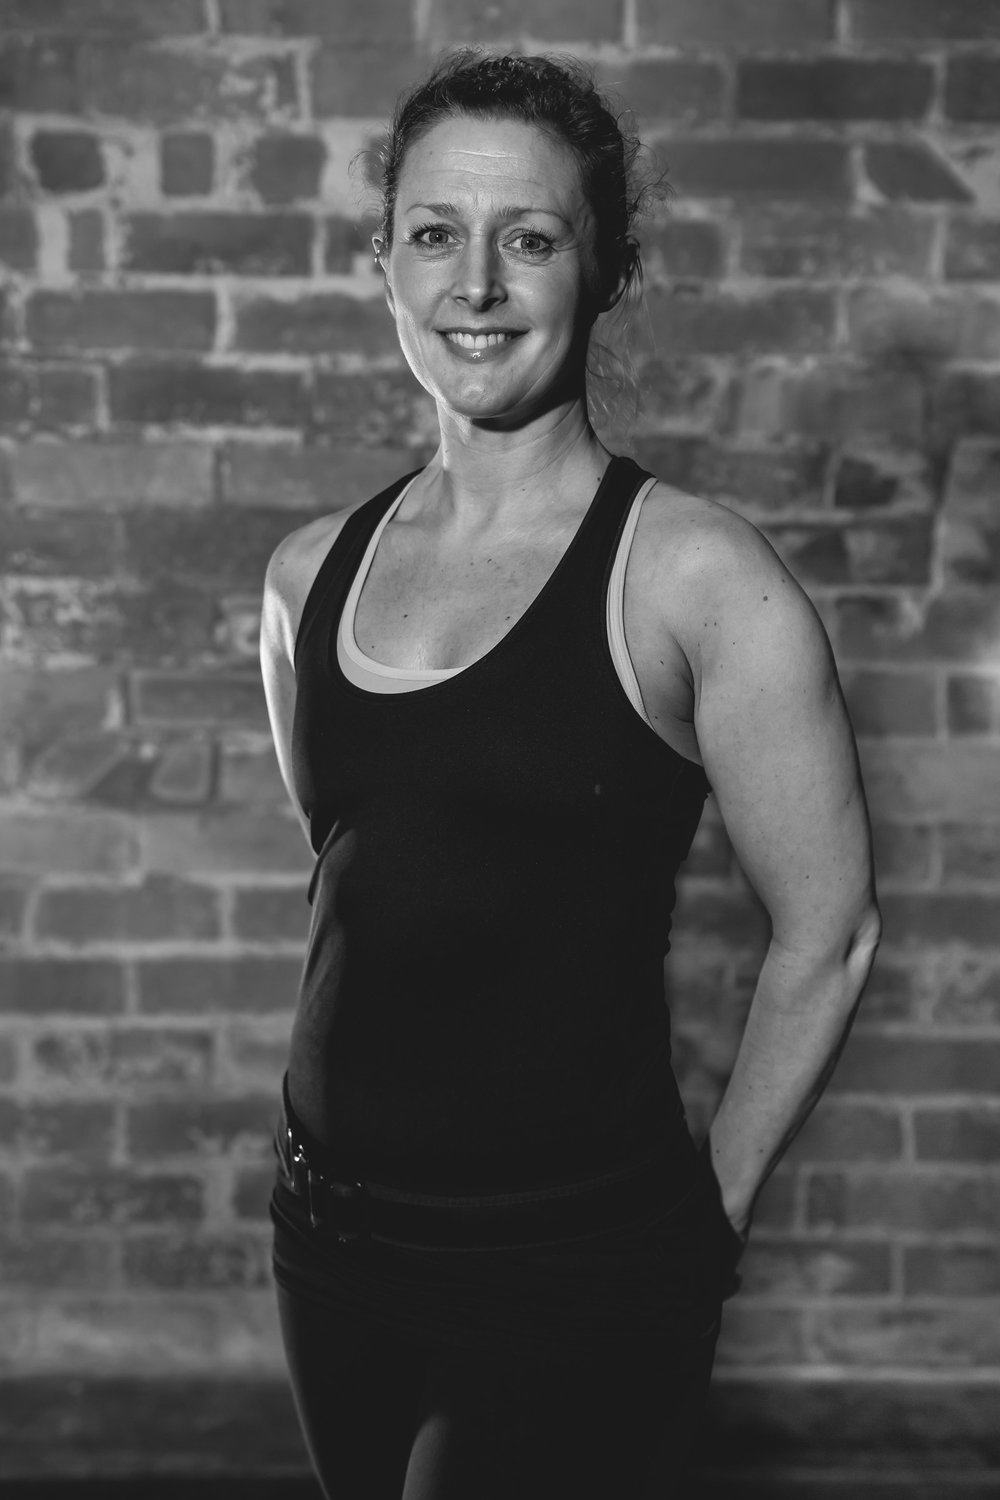 Lynnsey,  as a former dancer firmly believes music is motivation and her spin classes certainly have great reputation in Bath.  She will take you on a challenging rhythmical journey full of passion, energy and encouragement to push you and help you achieve a peak performance  With her years of experience, strong motivational teaching style and her mixes of old school/dance and trance she will definitely have you coming back for more.  Our northern girl loves nothing better than seeing her class work to the max but still able to smile at the end of it all!  Whatever your fitness level come and give it a try - you will not be disappointed.